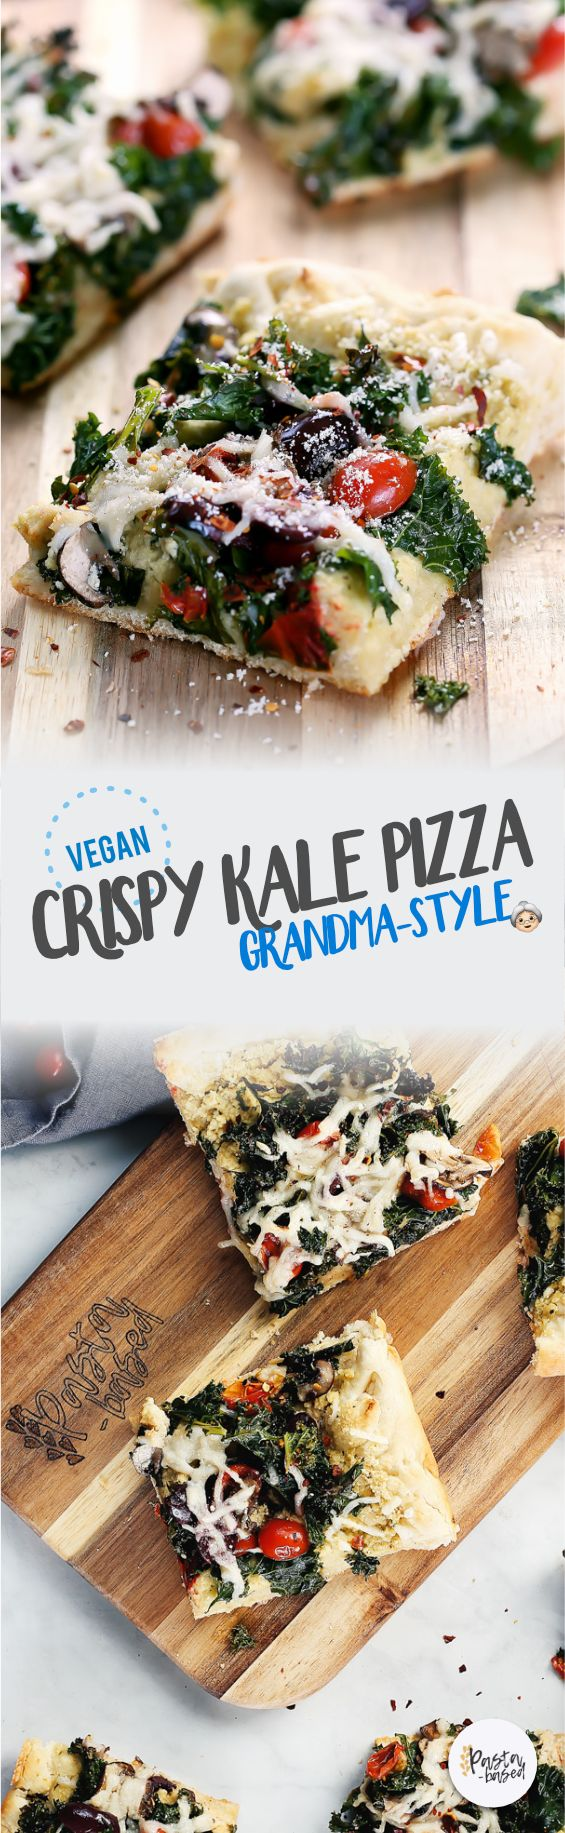 Vegan Grandma-Style Crispy Kale Pizza by Pasta-based. Made with homemade cashew ricotta and fresh kale shreds. Then, topped with melty vegan mozzarella cheese shreds and grape tomatoes.